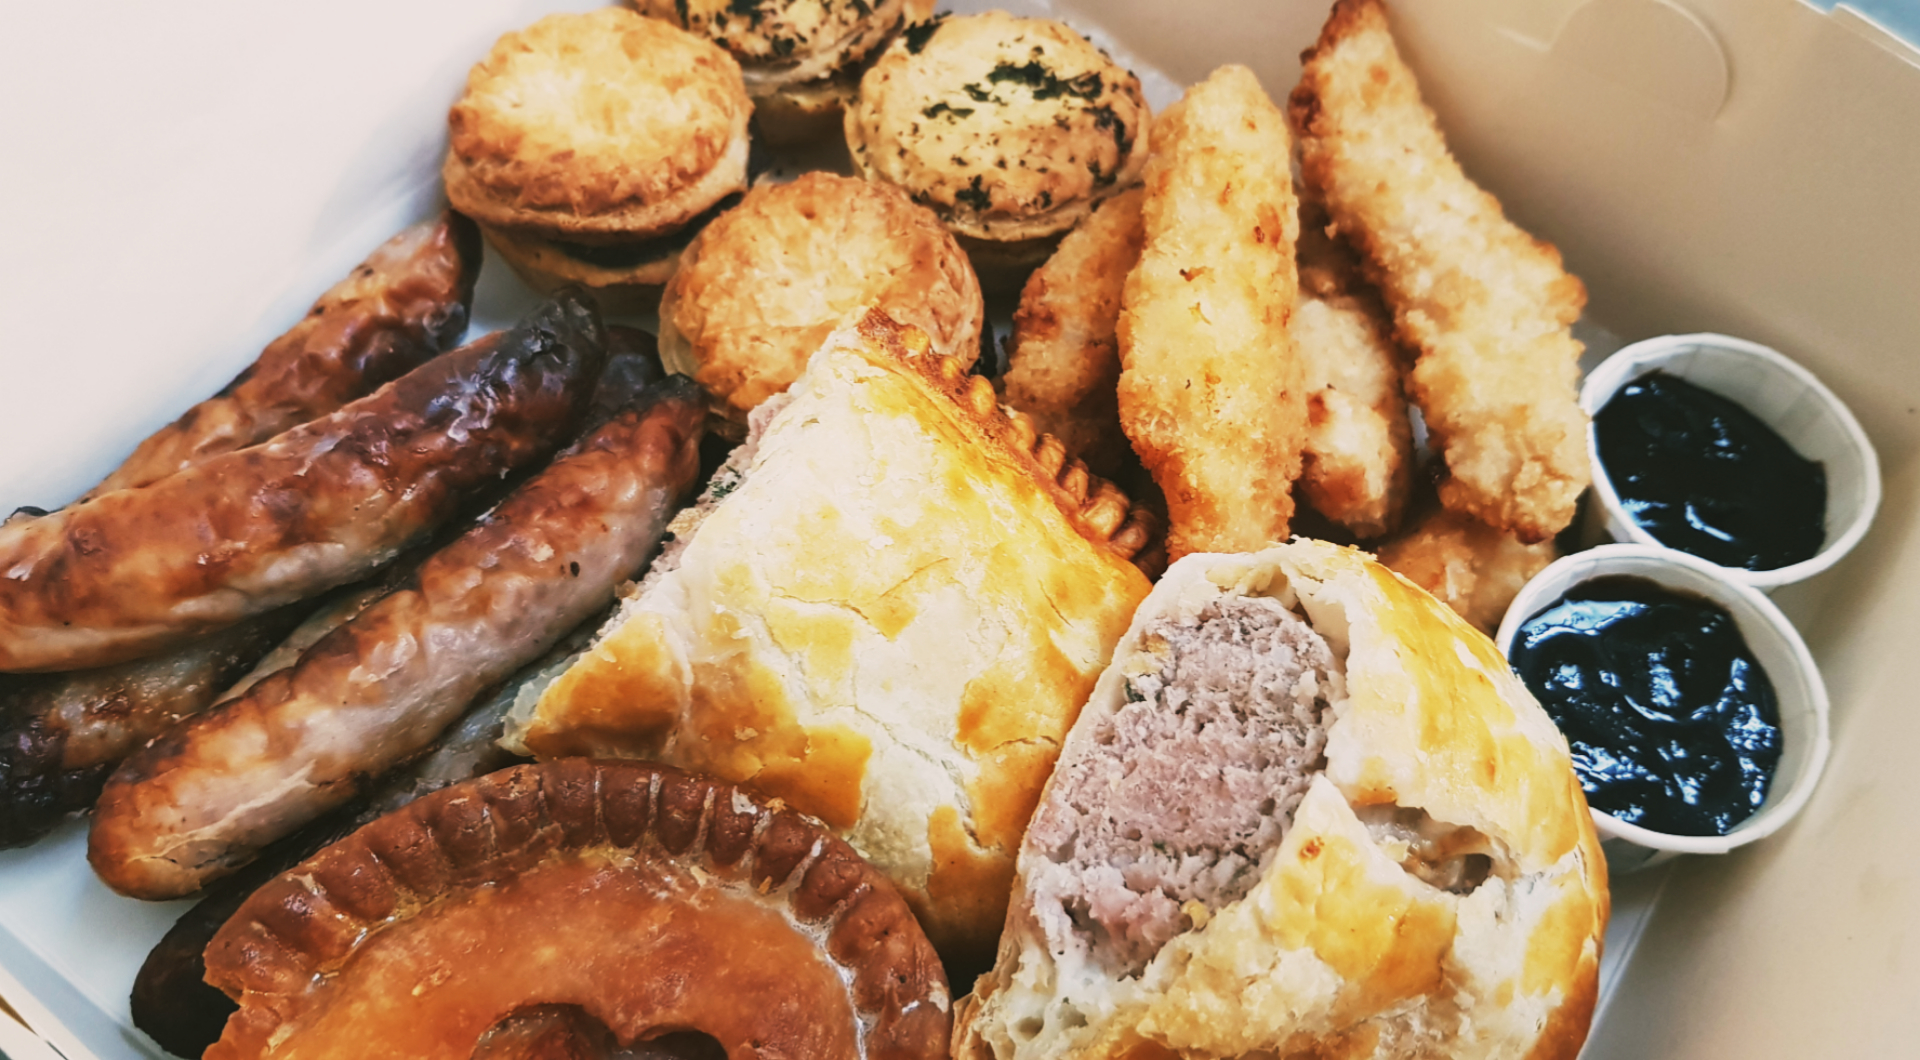 Cumbrian Tapas Sharing Box